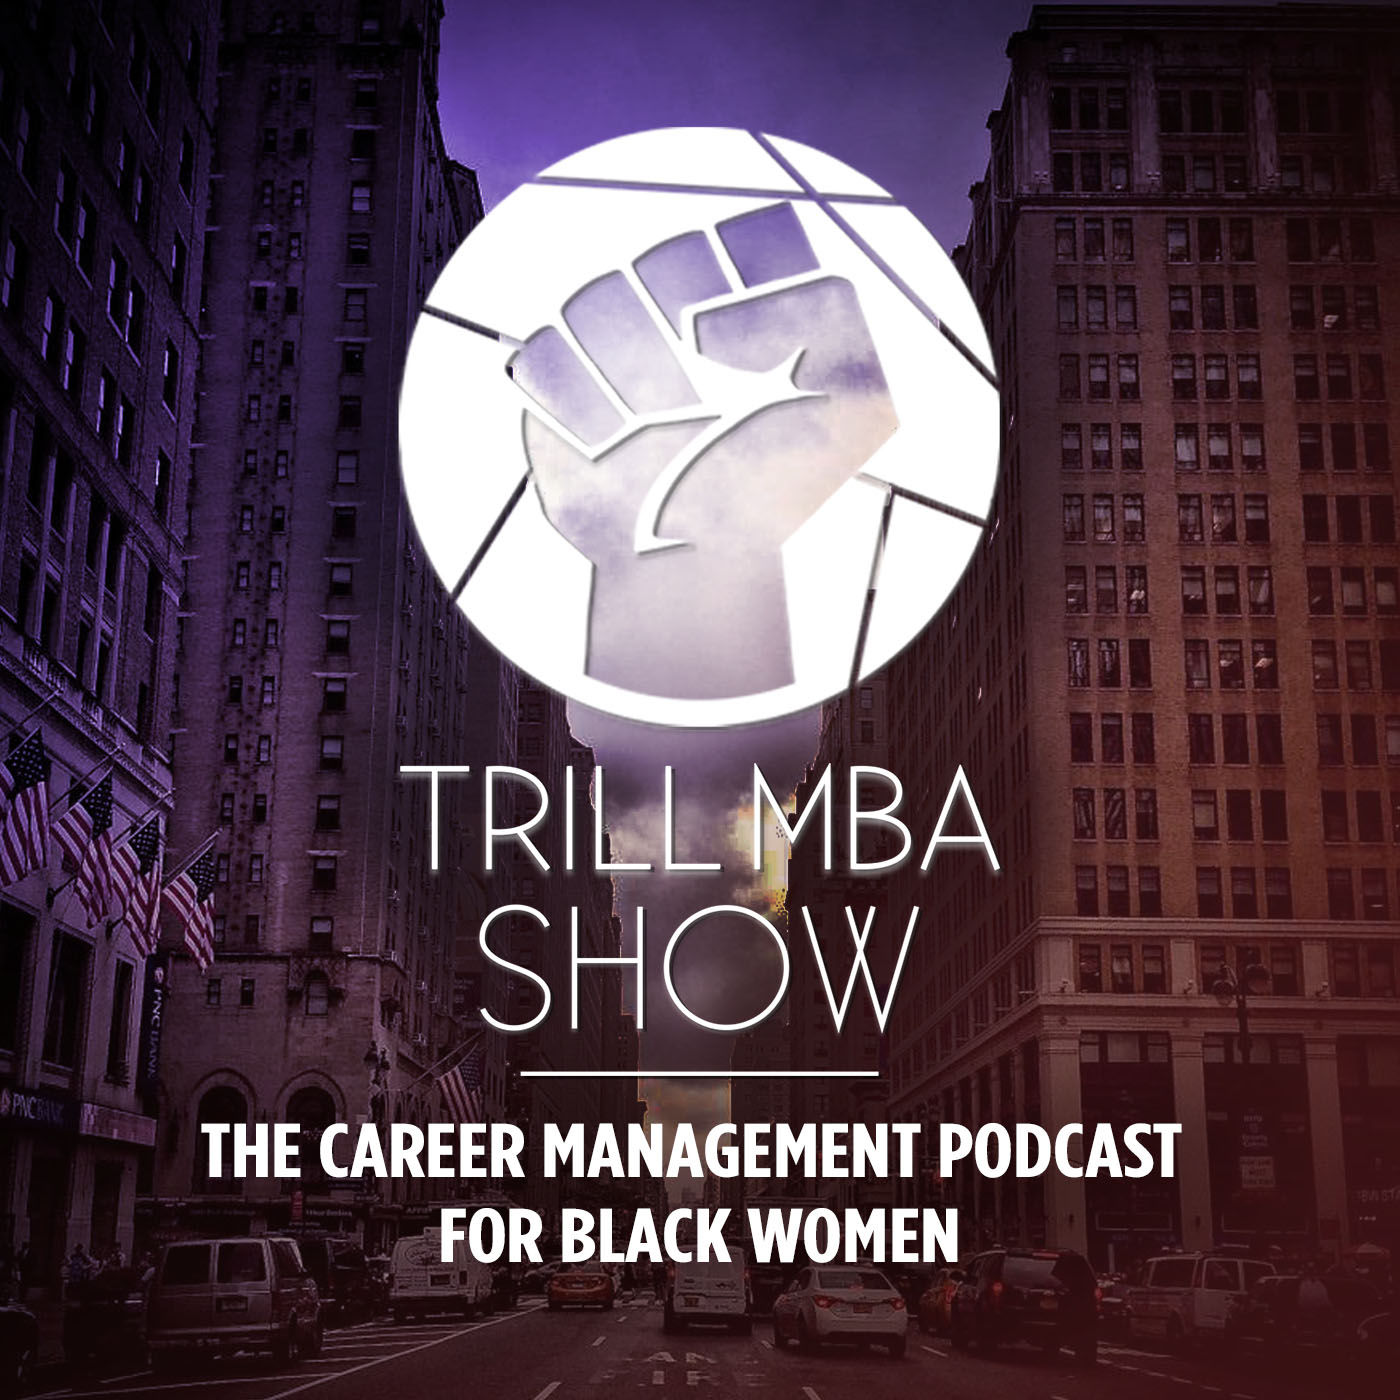 Trill MBA Show - The Career Management Podcast for Black Women